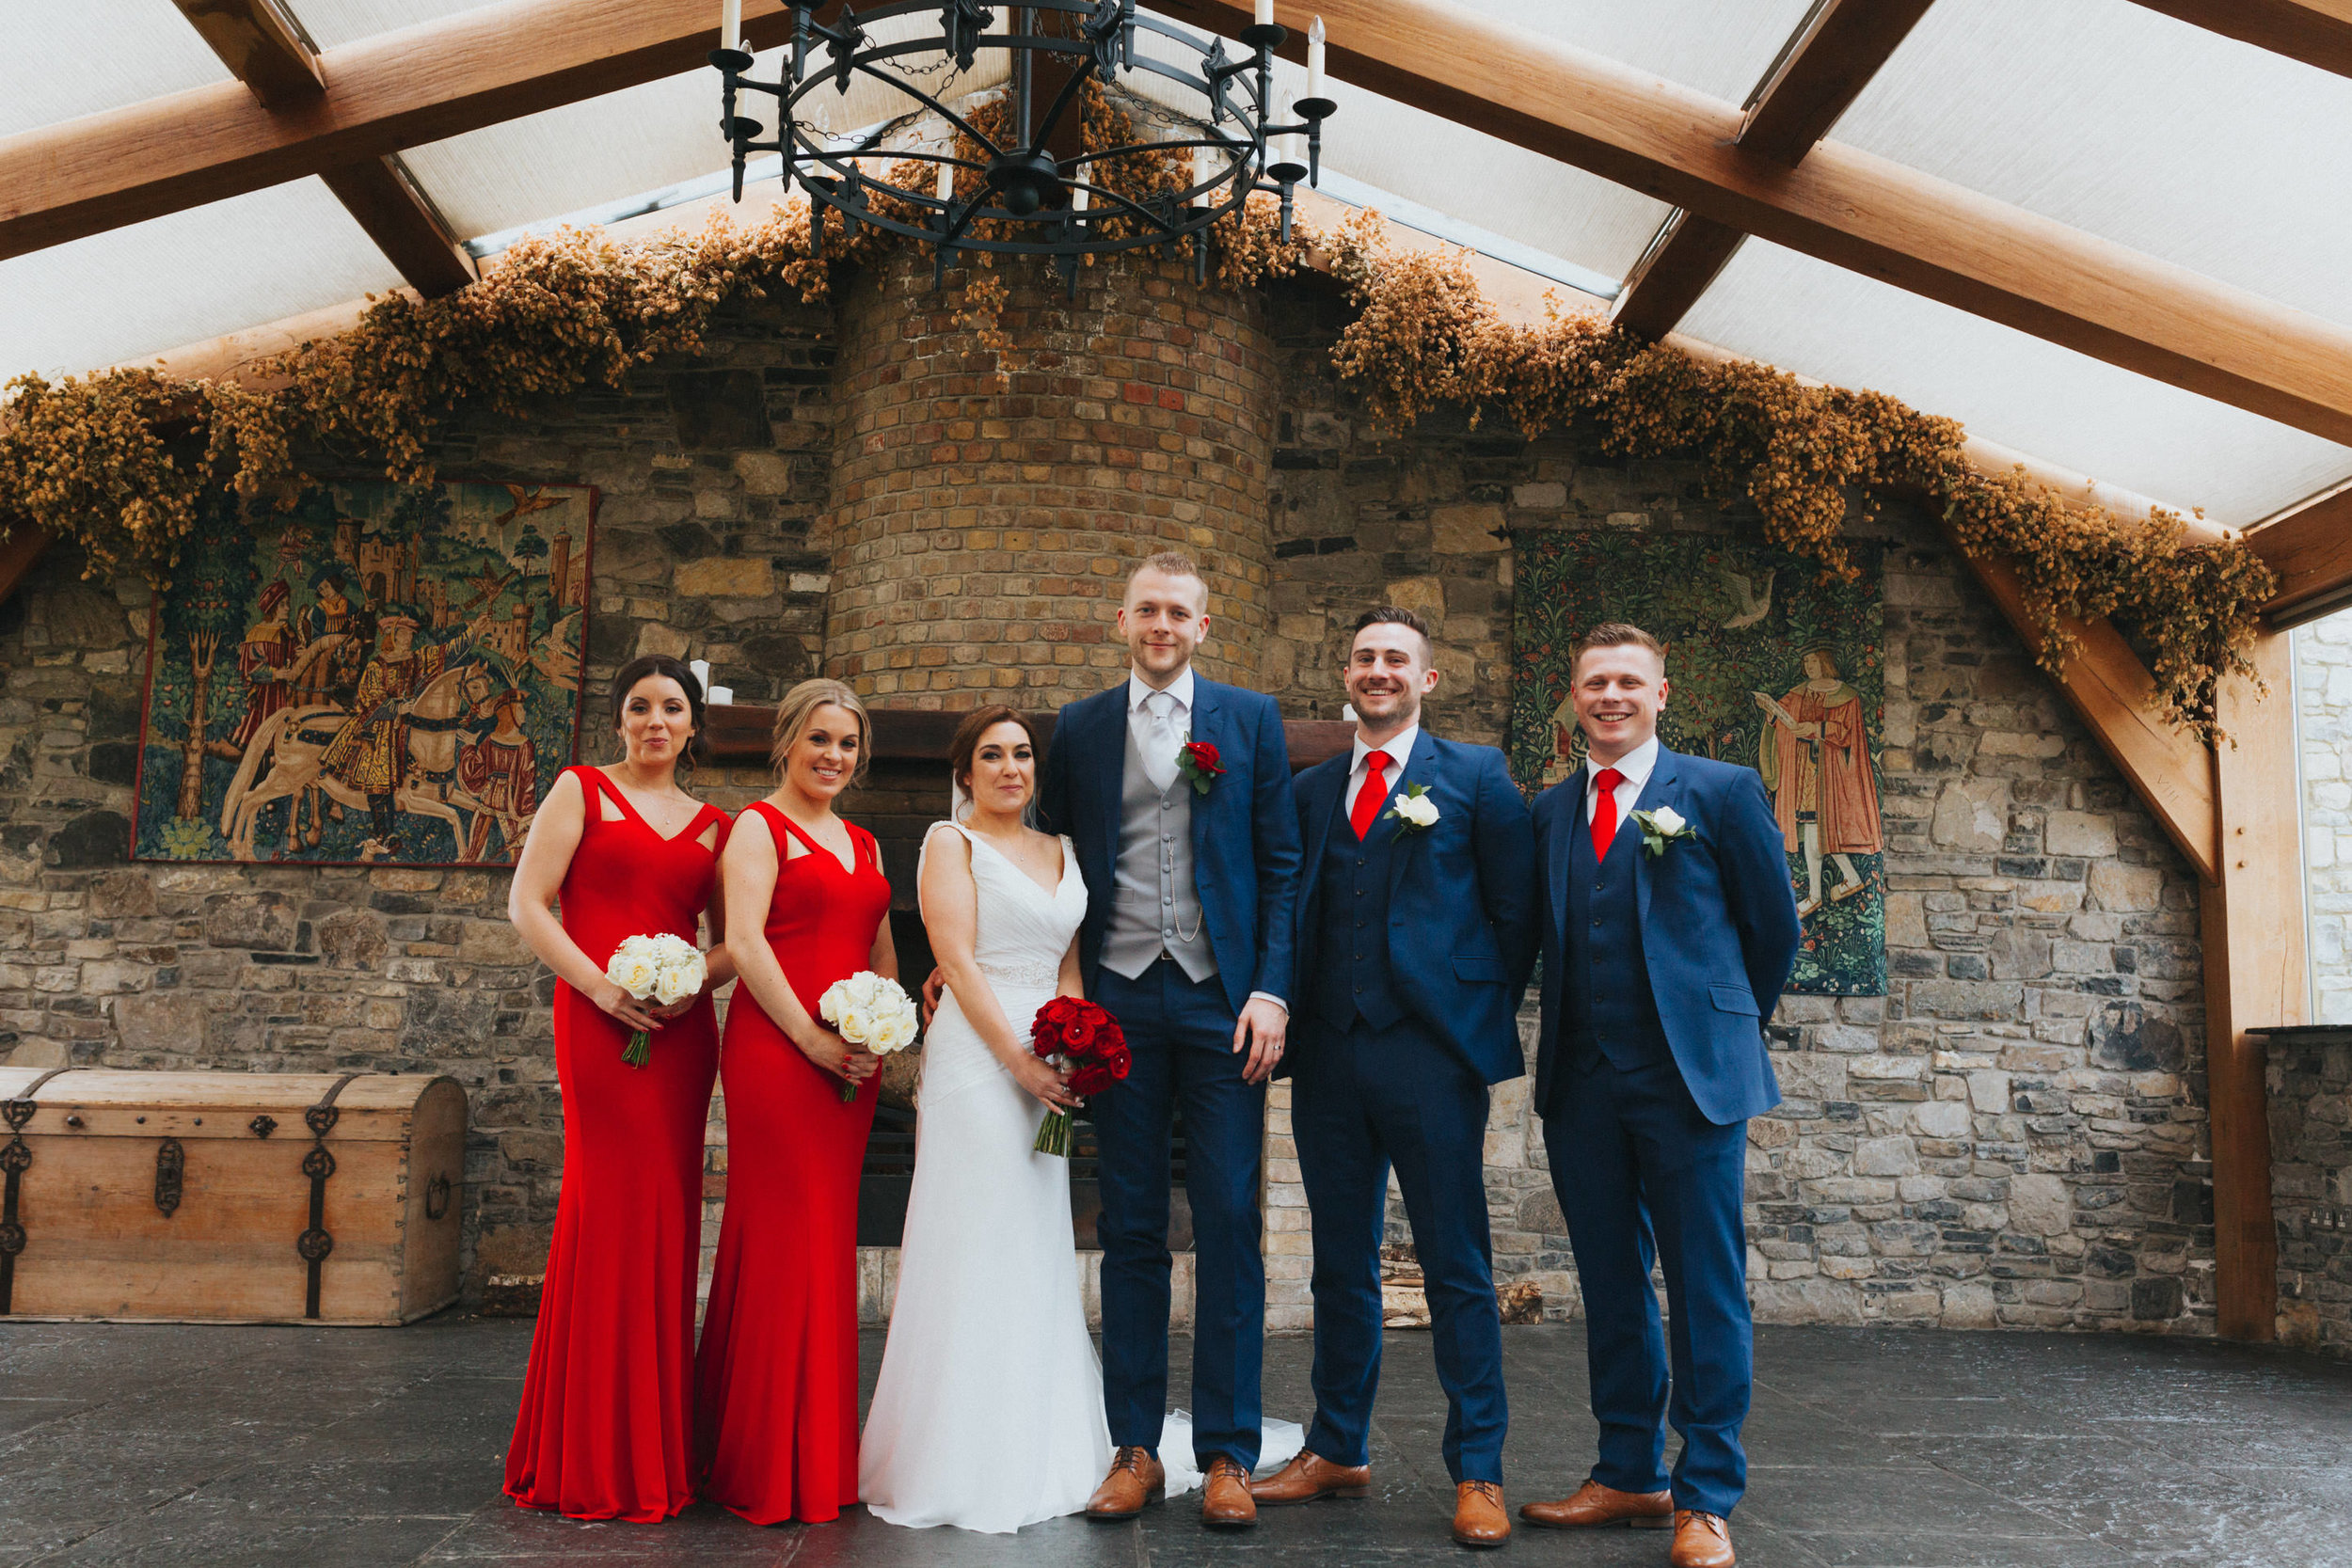 Barberstown_Castle_Wedding_Photographer_Livia_Figueiredo_576.jpg